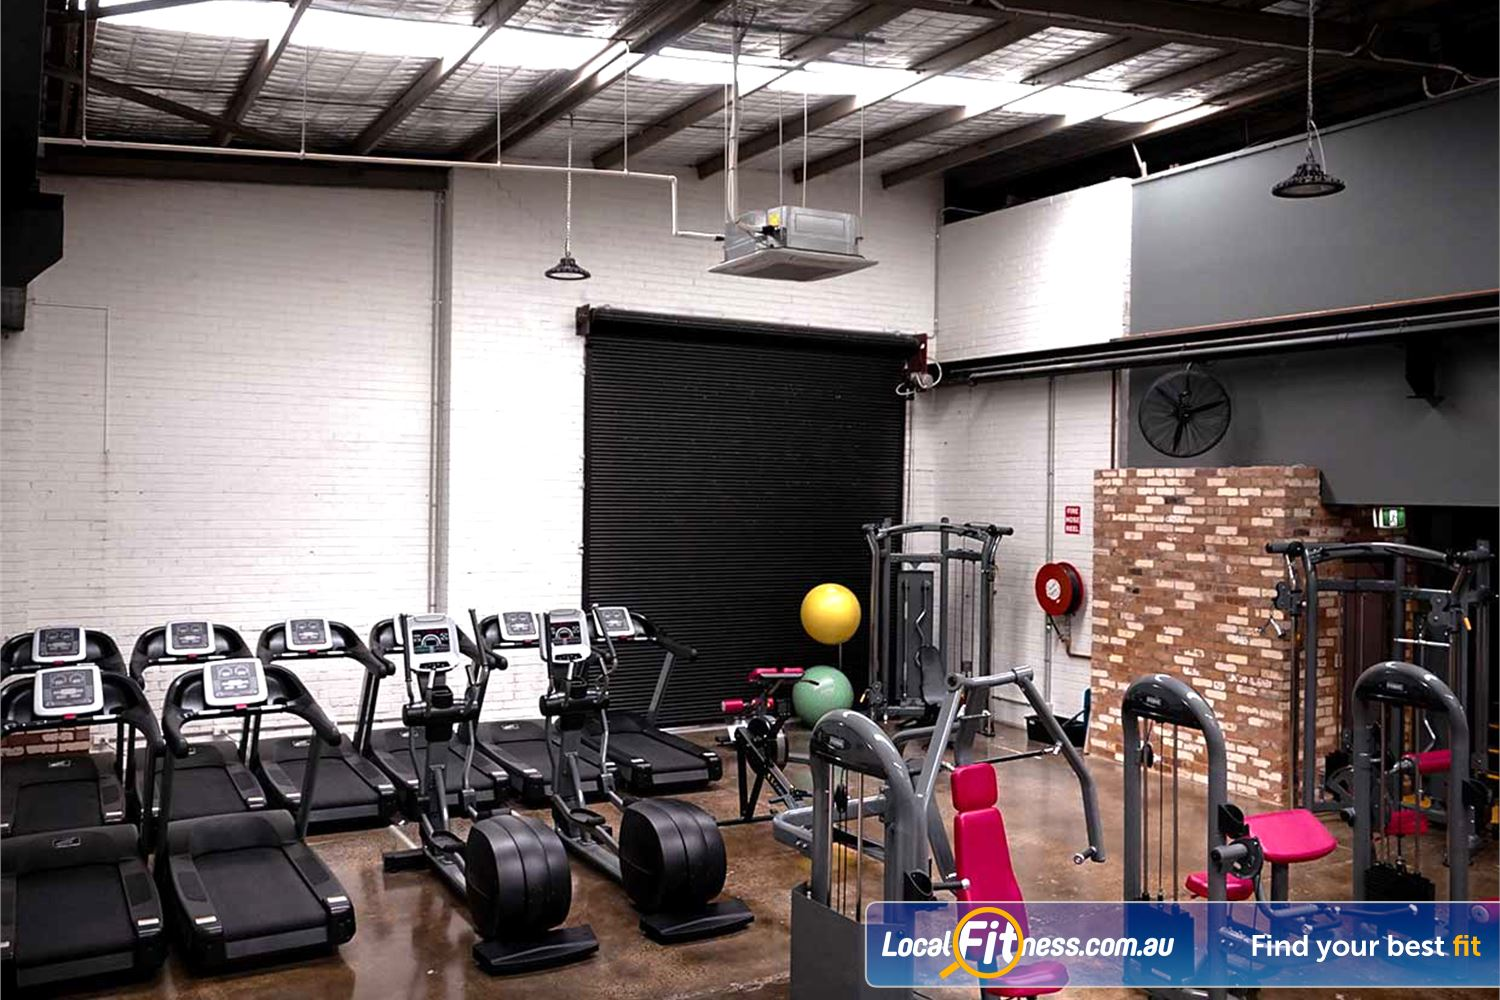 Dukes 24hr Gym Richmond Full range of cardio including cross-trainers, rowers and treadmills.